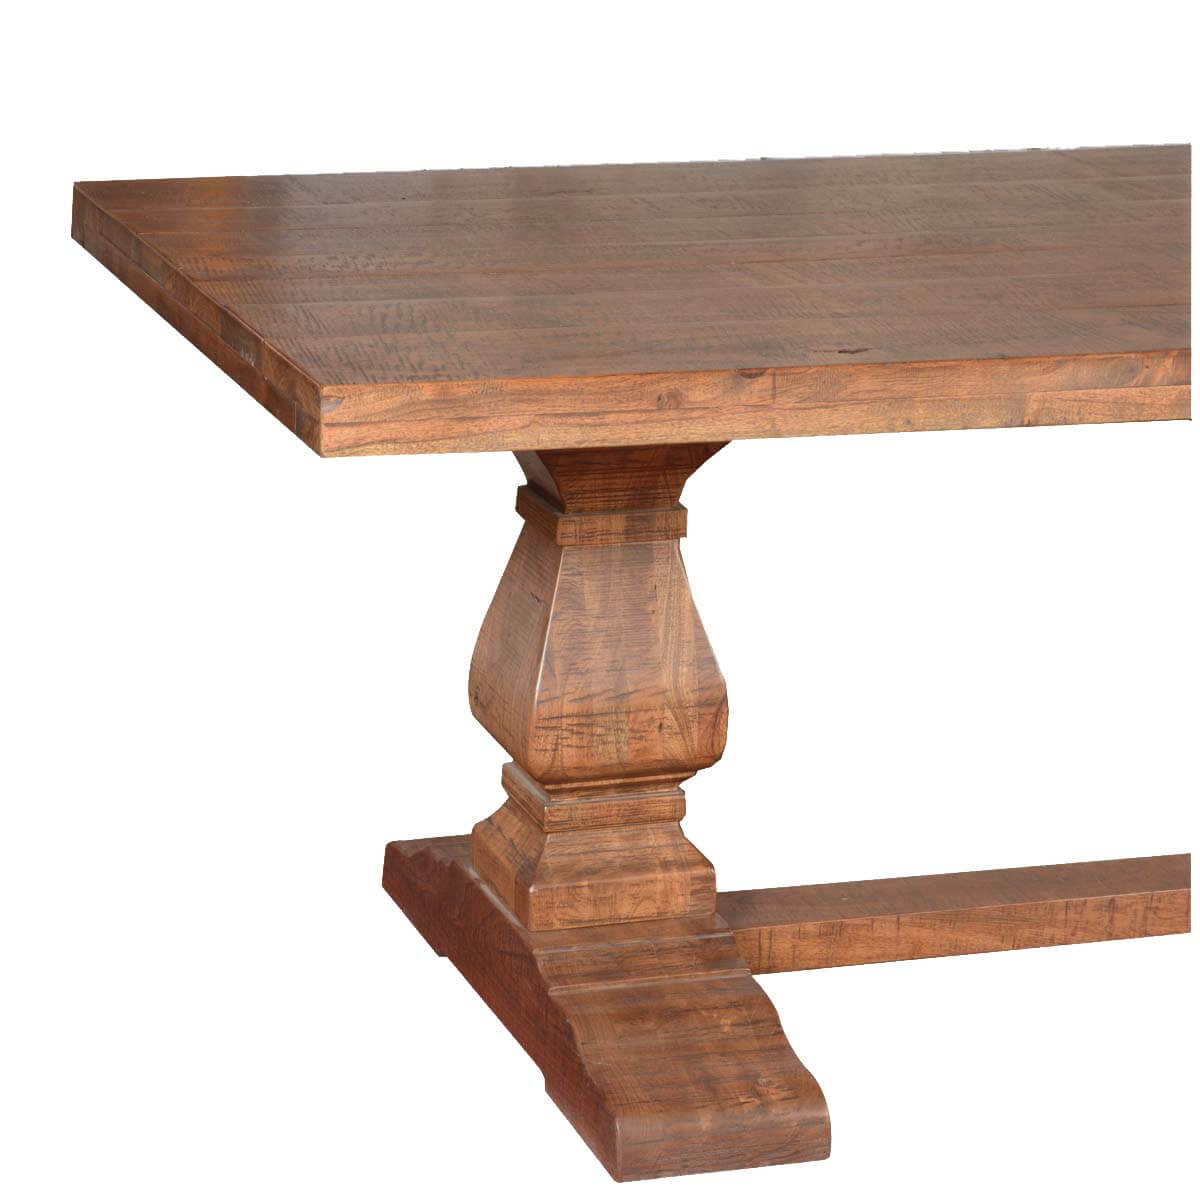 Dining Tables Rustic: Trestle Pedestal Traditional Eco-Friendly Wood Rustic Dining Table